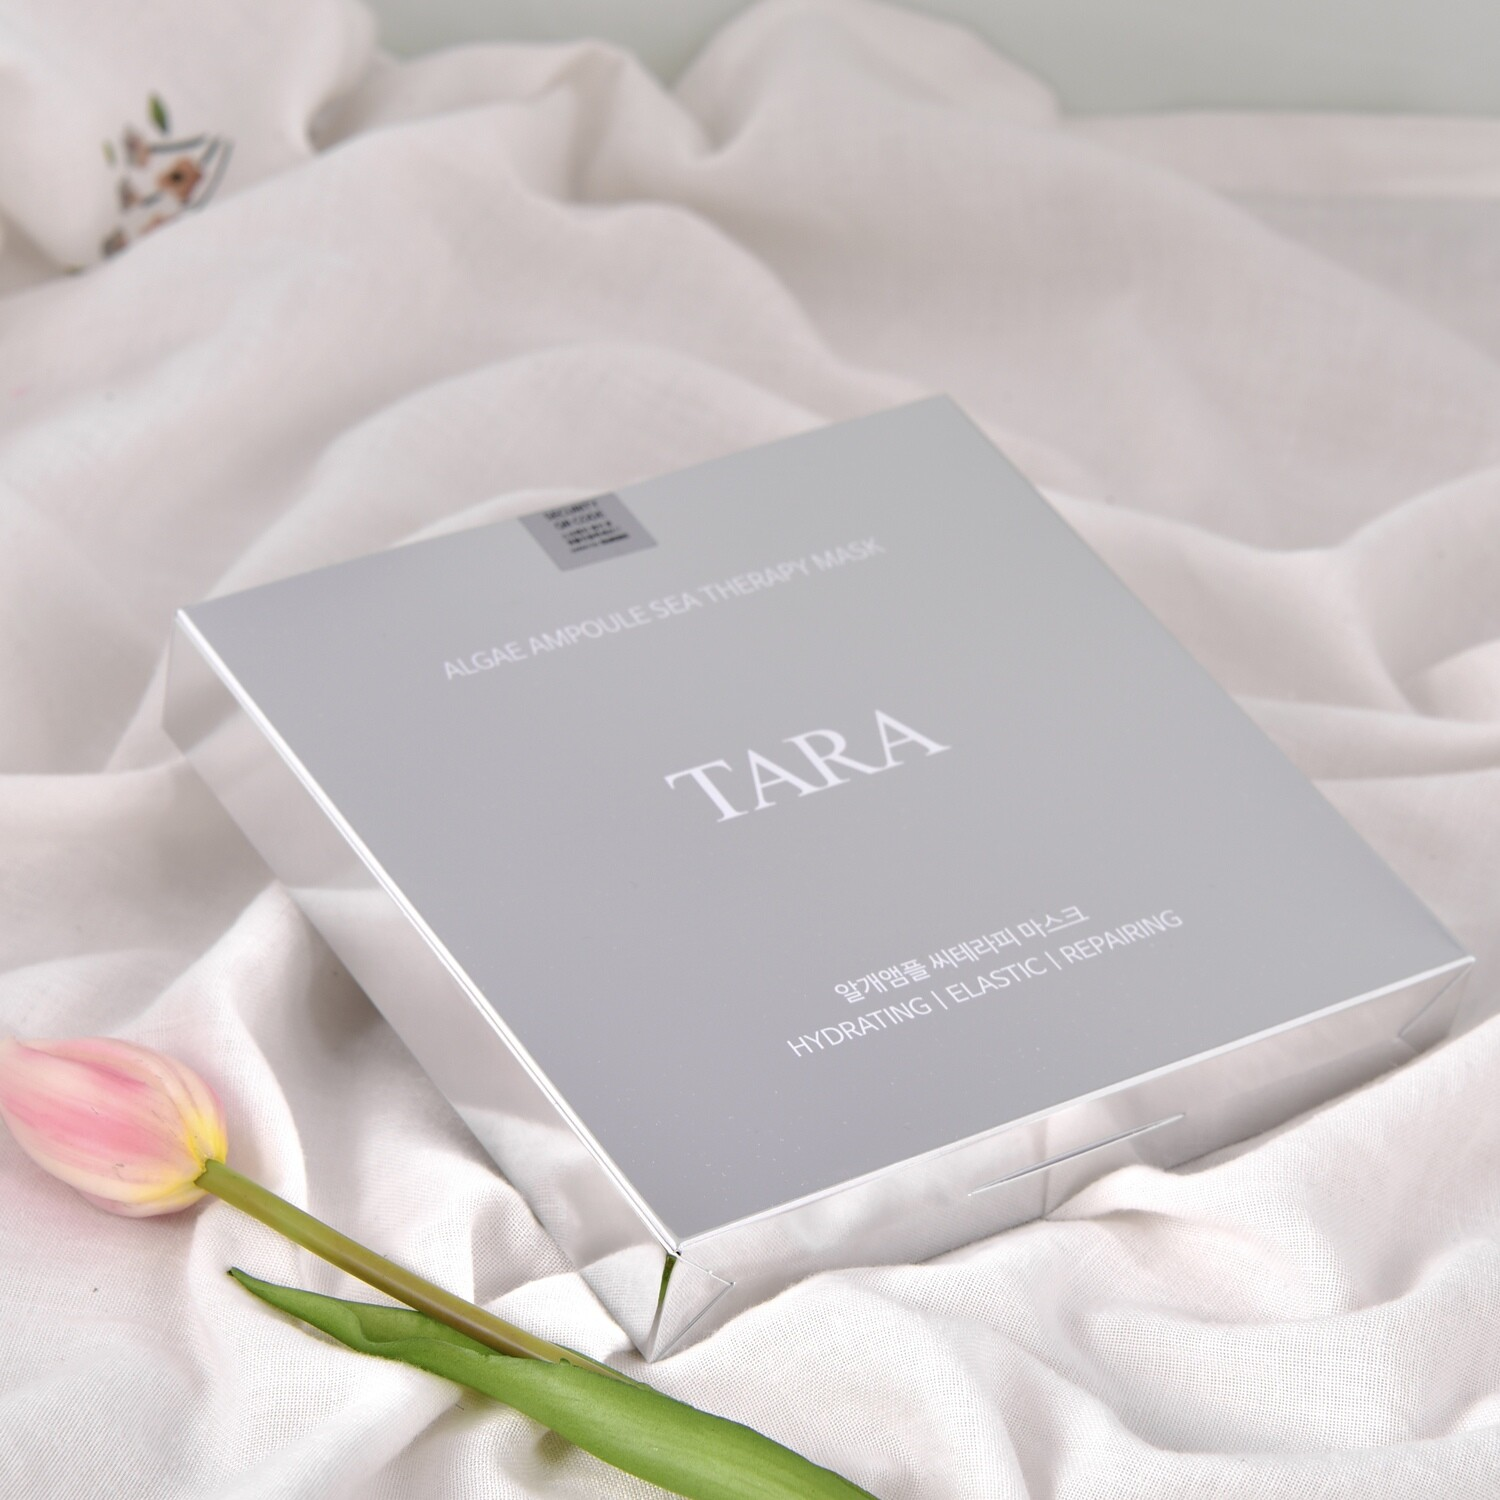 TARA - Algae Ampoule Sea Therapy Mask - 5 in a Pack